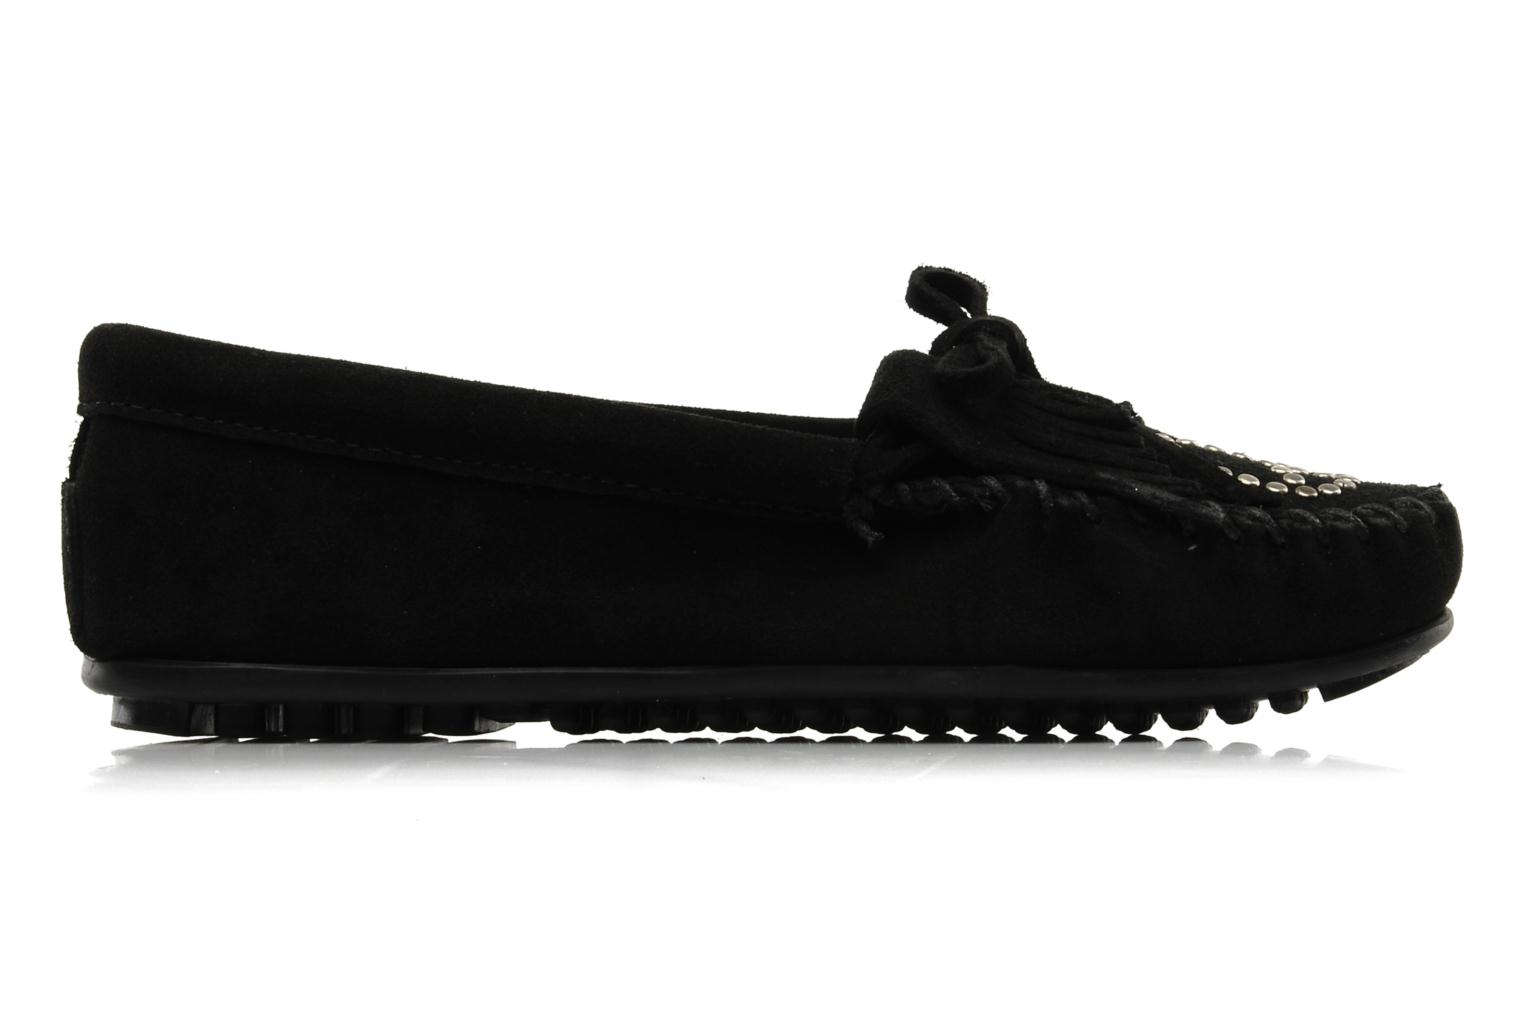 PEACE Black Suede